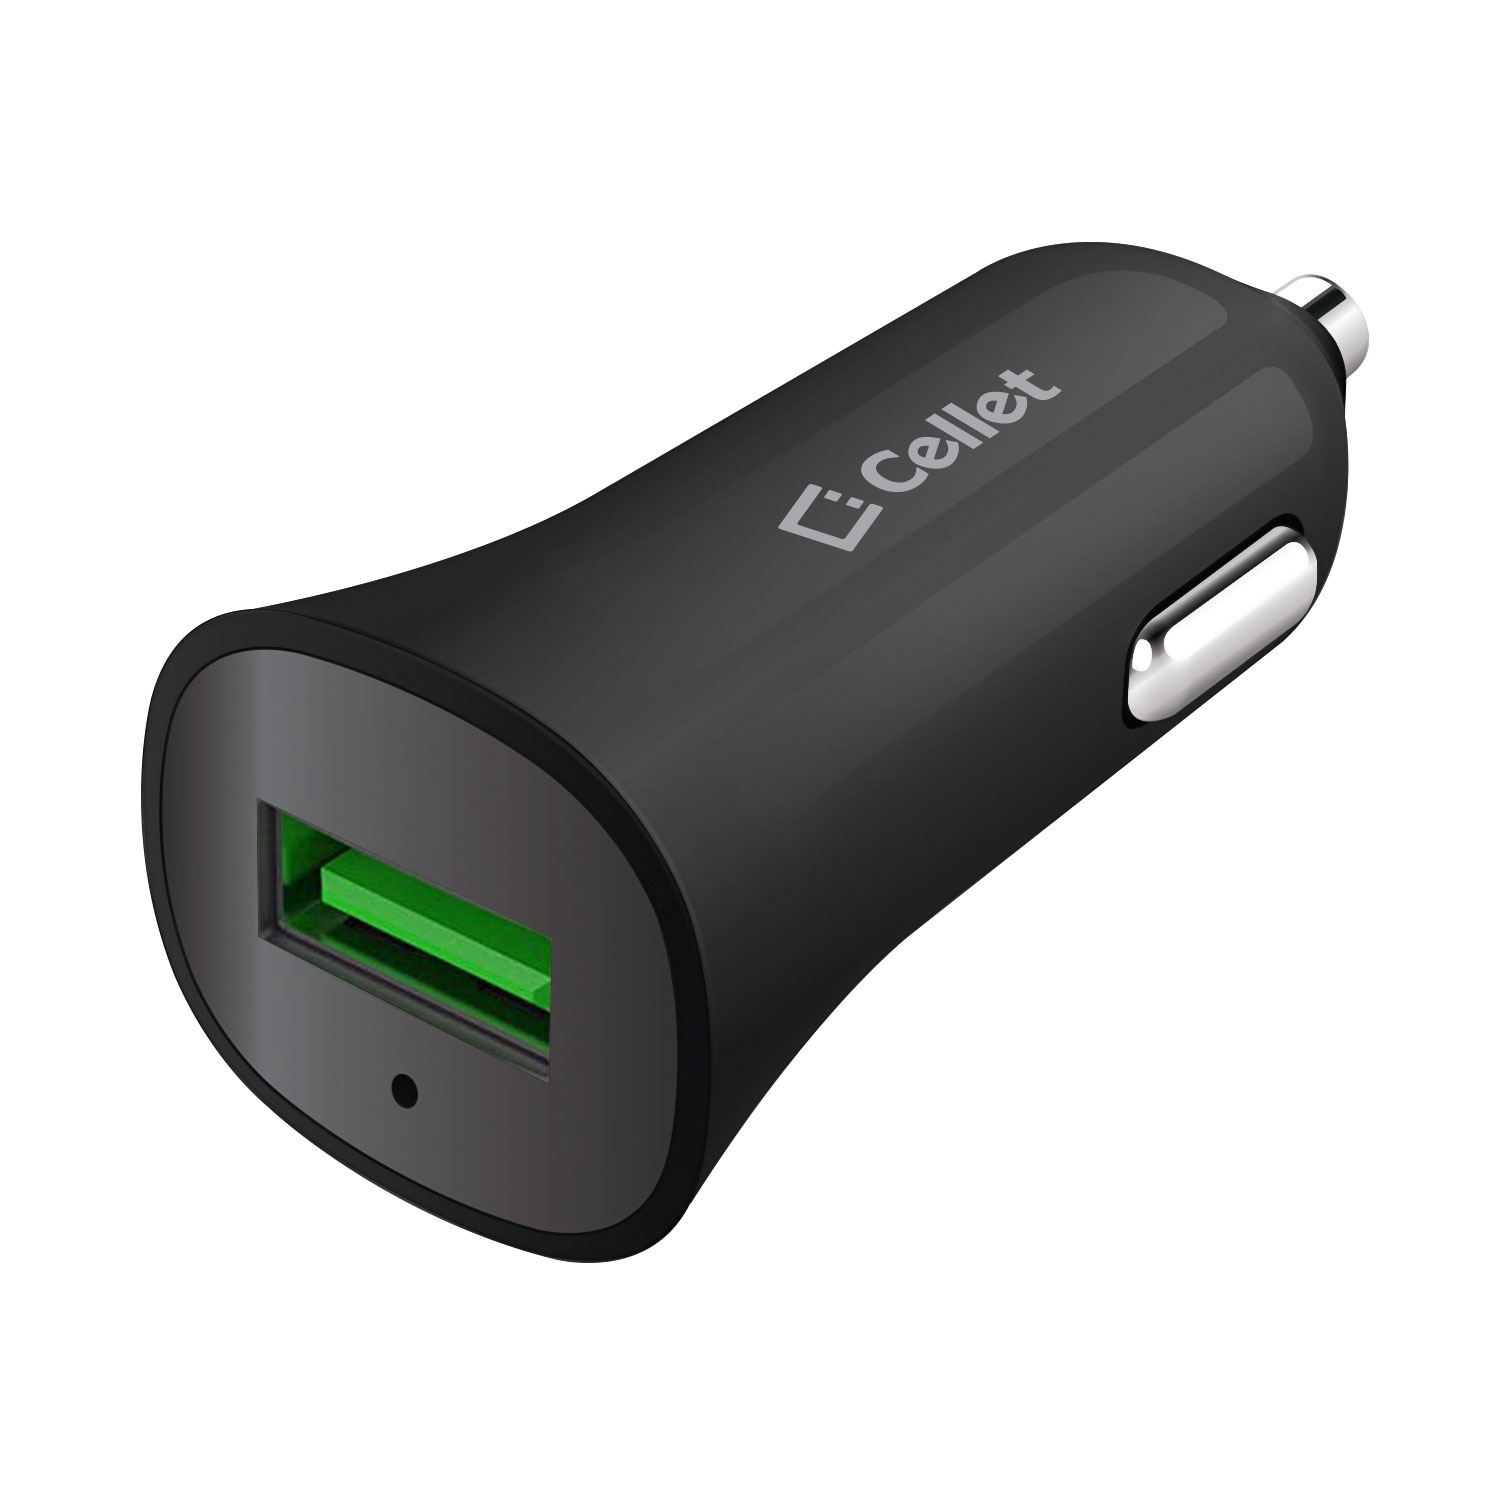 Alcatel Go Flip V Car Charger Quick Charge 3.0 Black 3.3ft